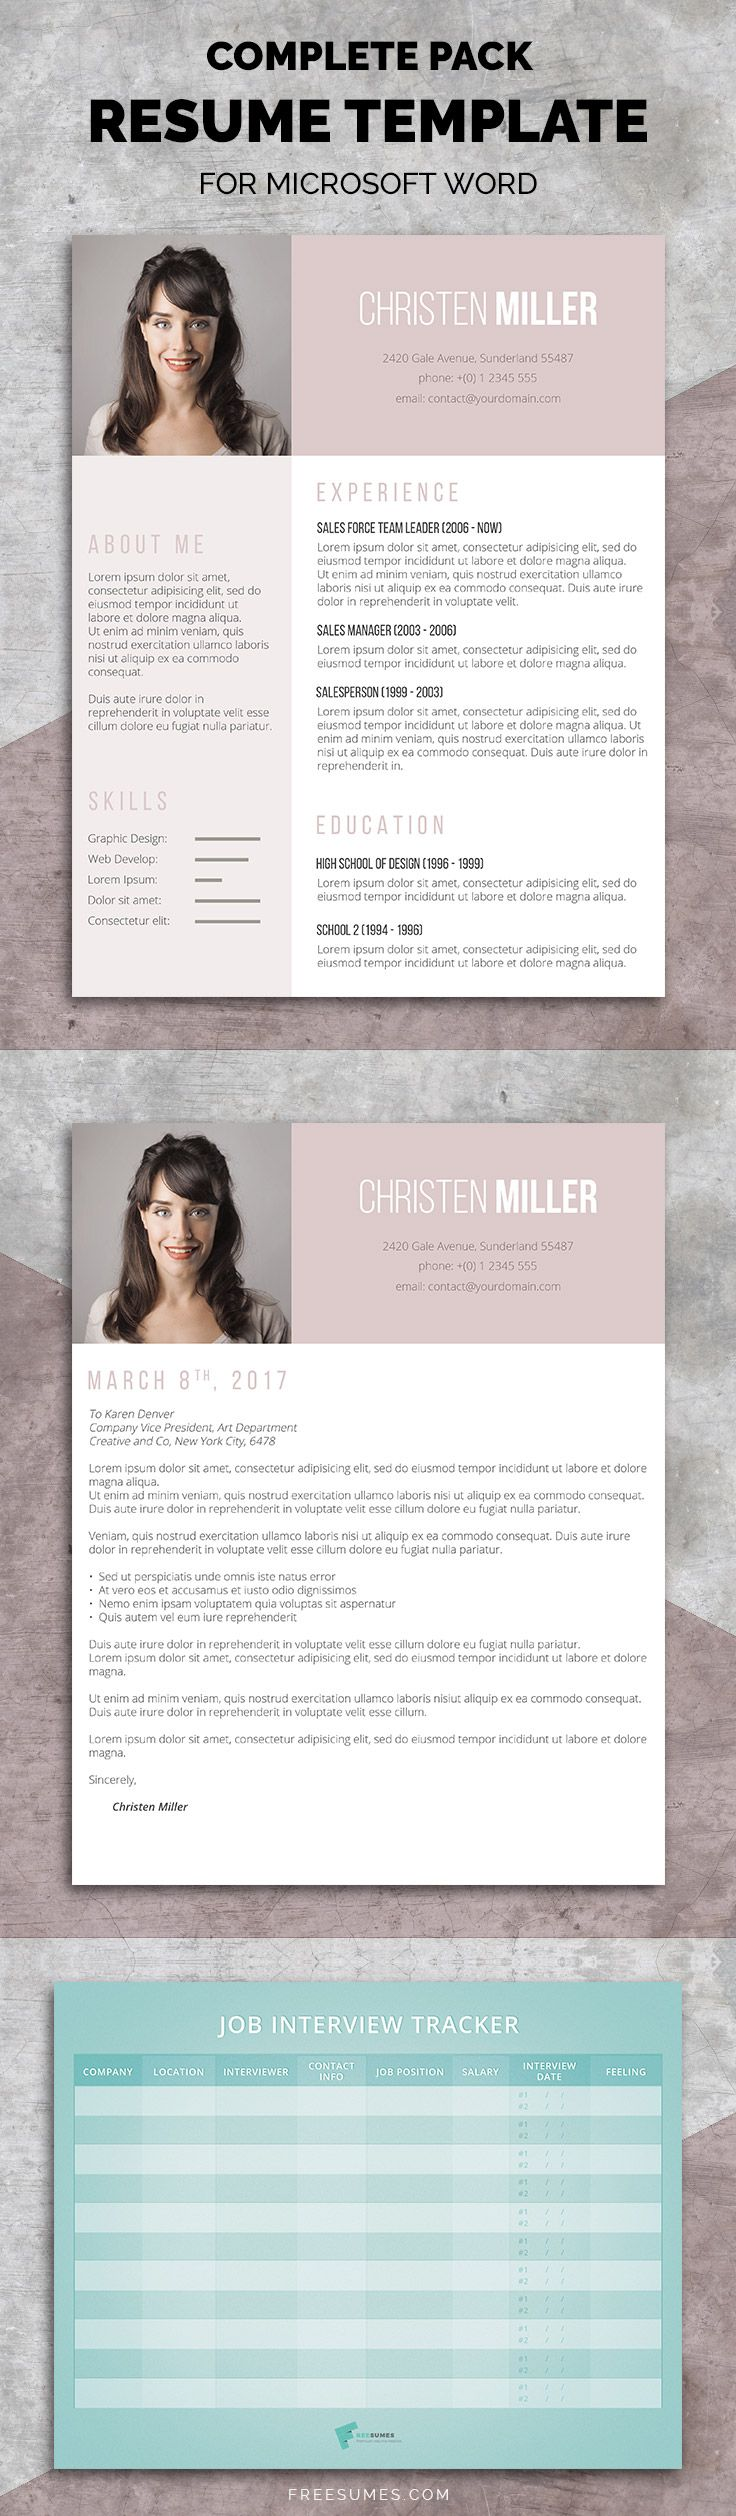 It's time for a makeover. You can now revamp your entire application with this brilliant feminine resume pack.  #resume #template #pack